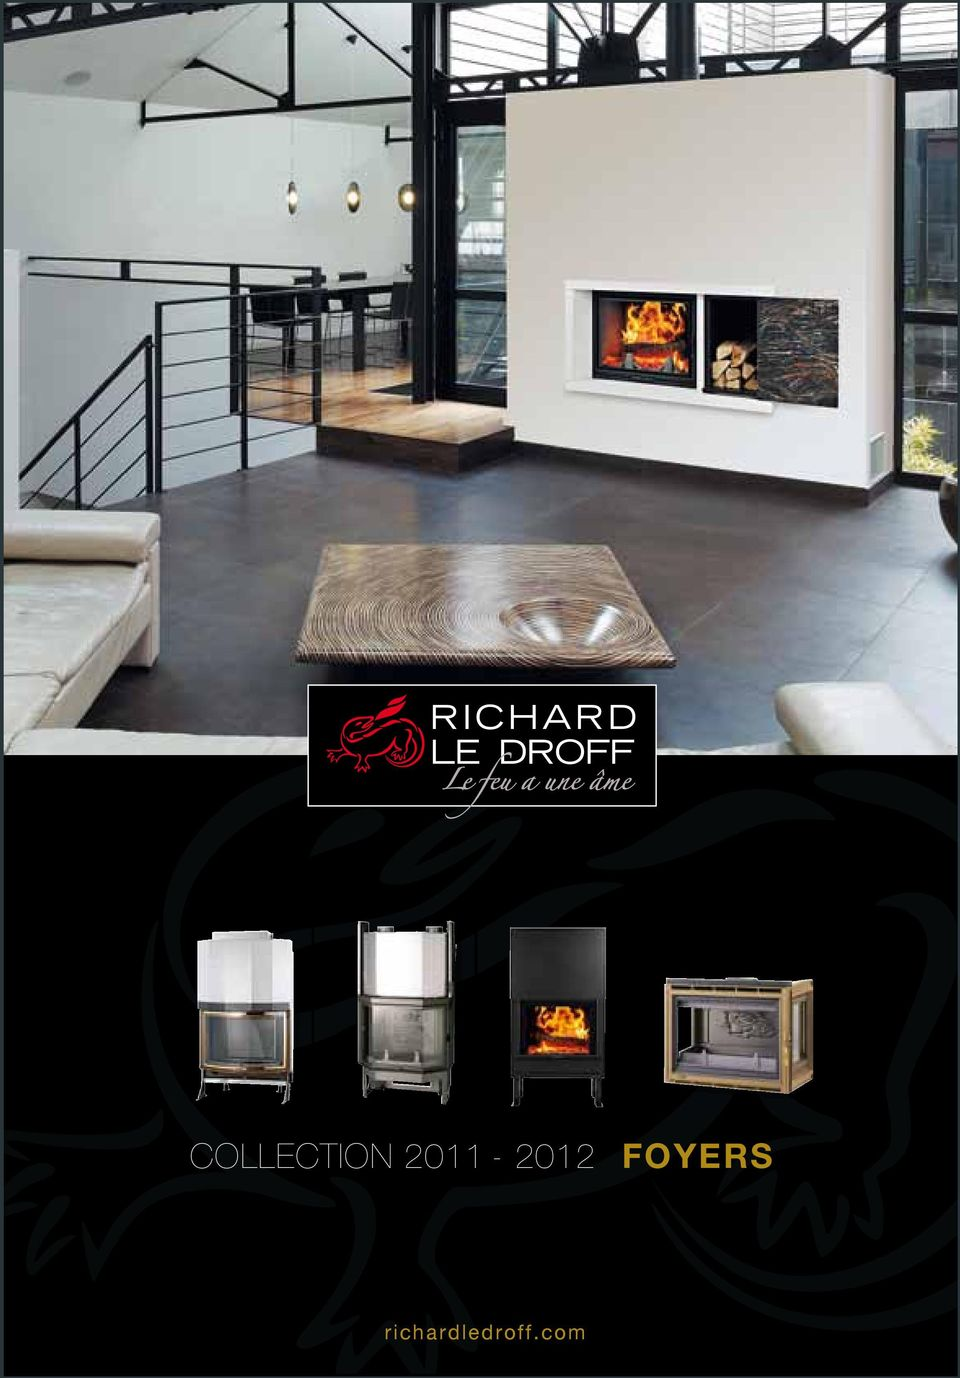 Richard Le Droff Avis Collection Foyers Pdf